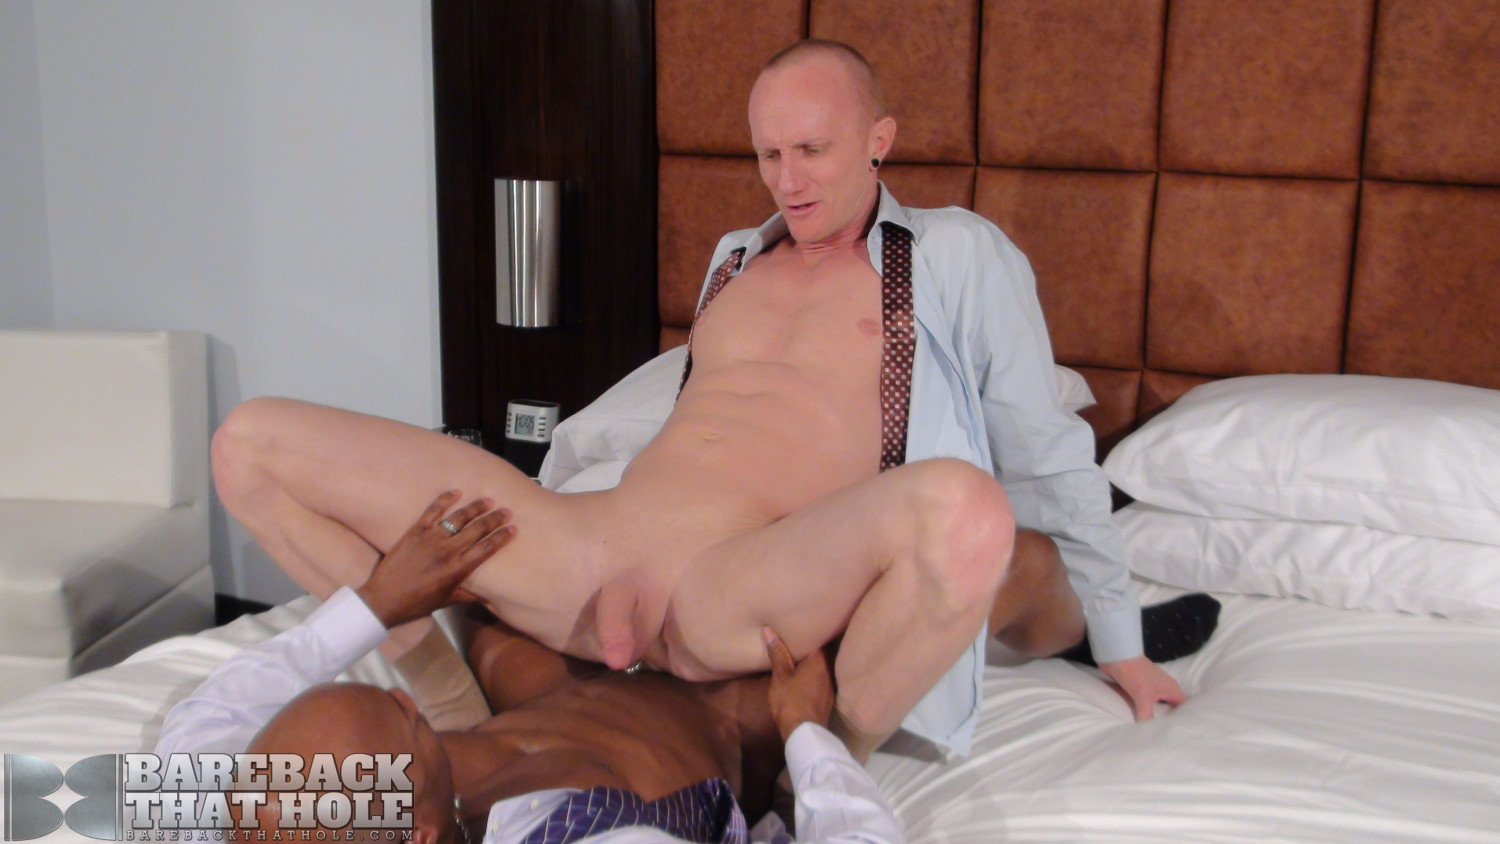 Bareback-That-Hole-Champ-Robinson-and-Mason-Garet-Interracial-Big-Black-Cock-Bareback-Amateur-Gay-Porn-14 Black Corporate Executive Barebacks His White Co-Worker